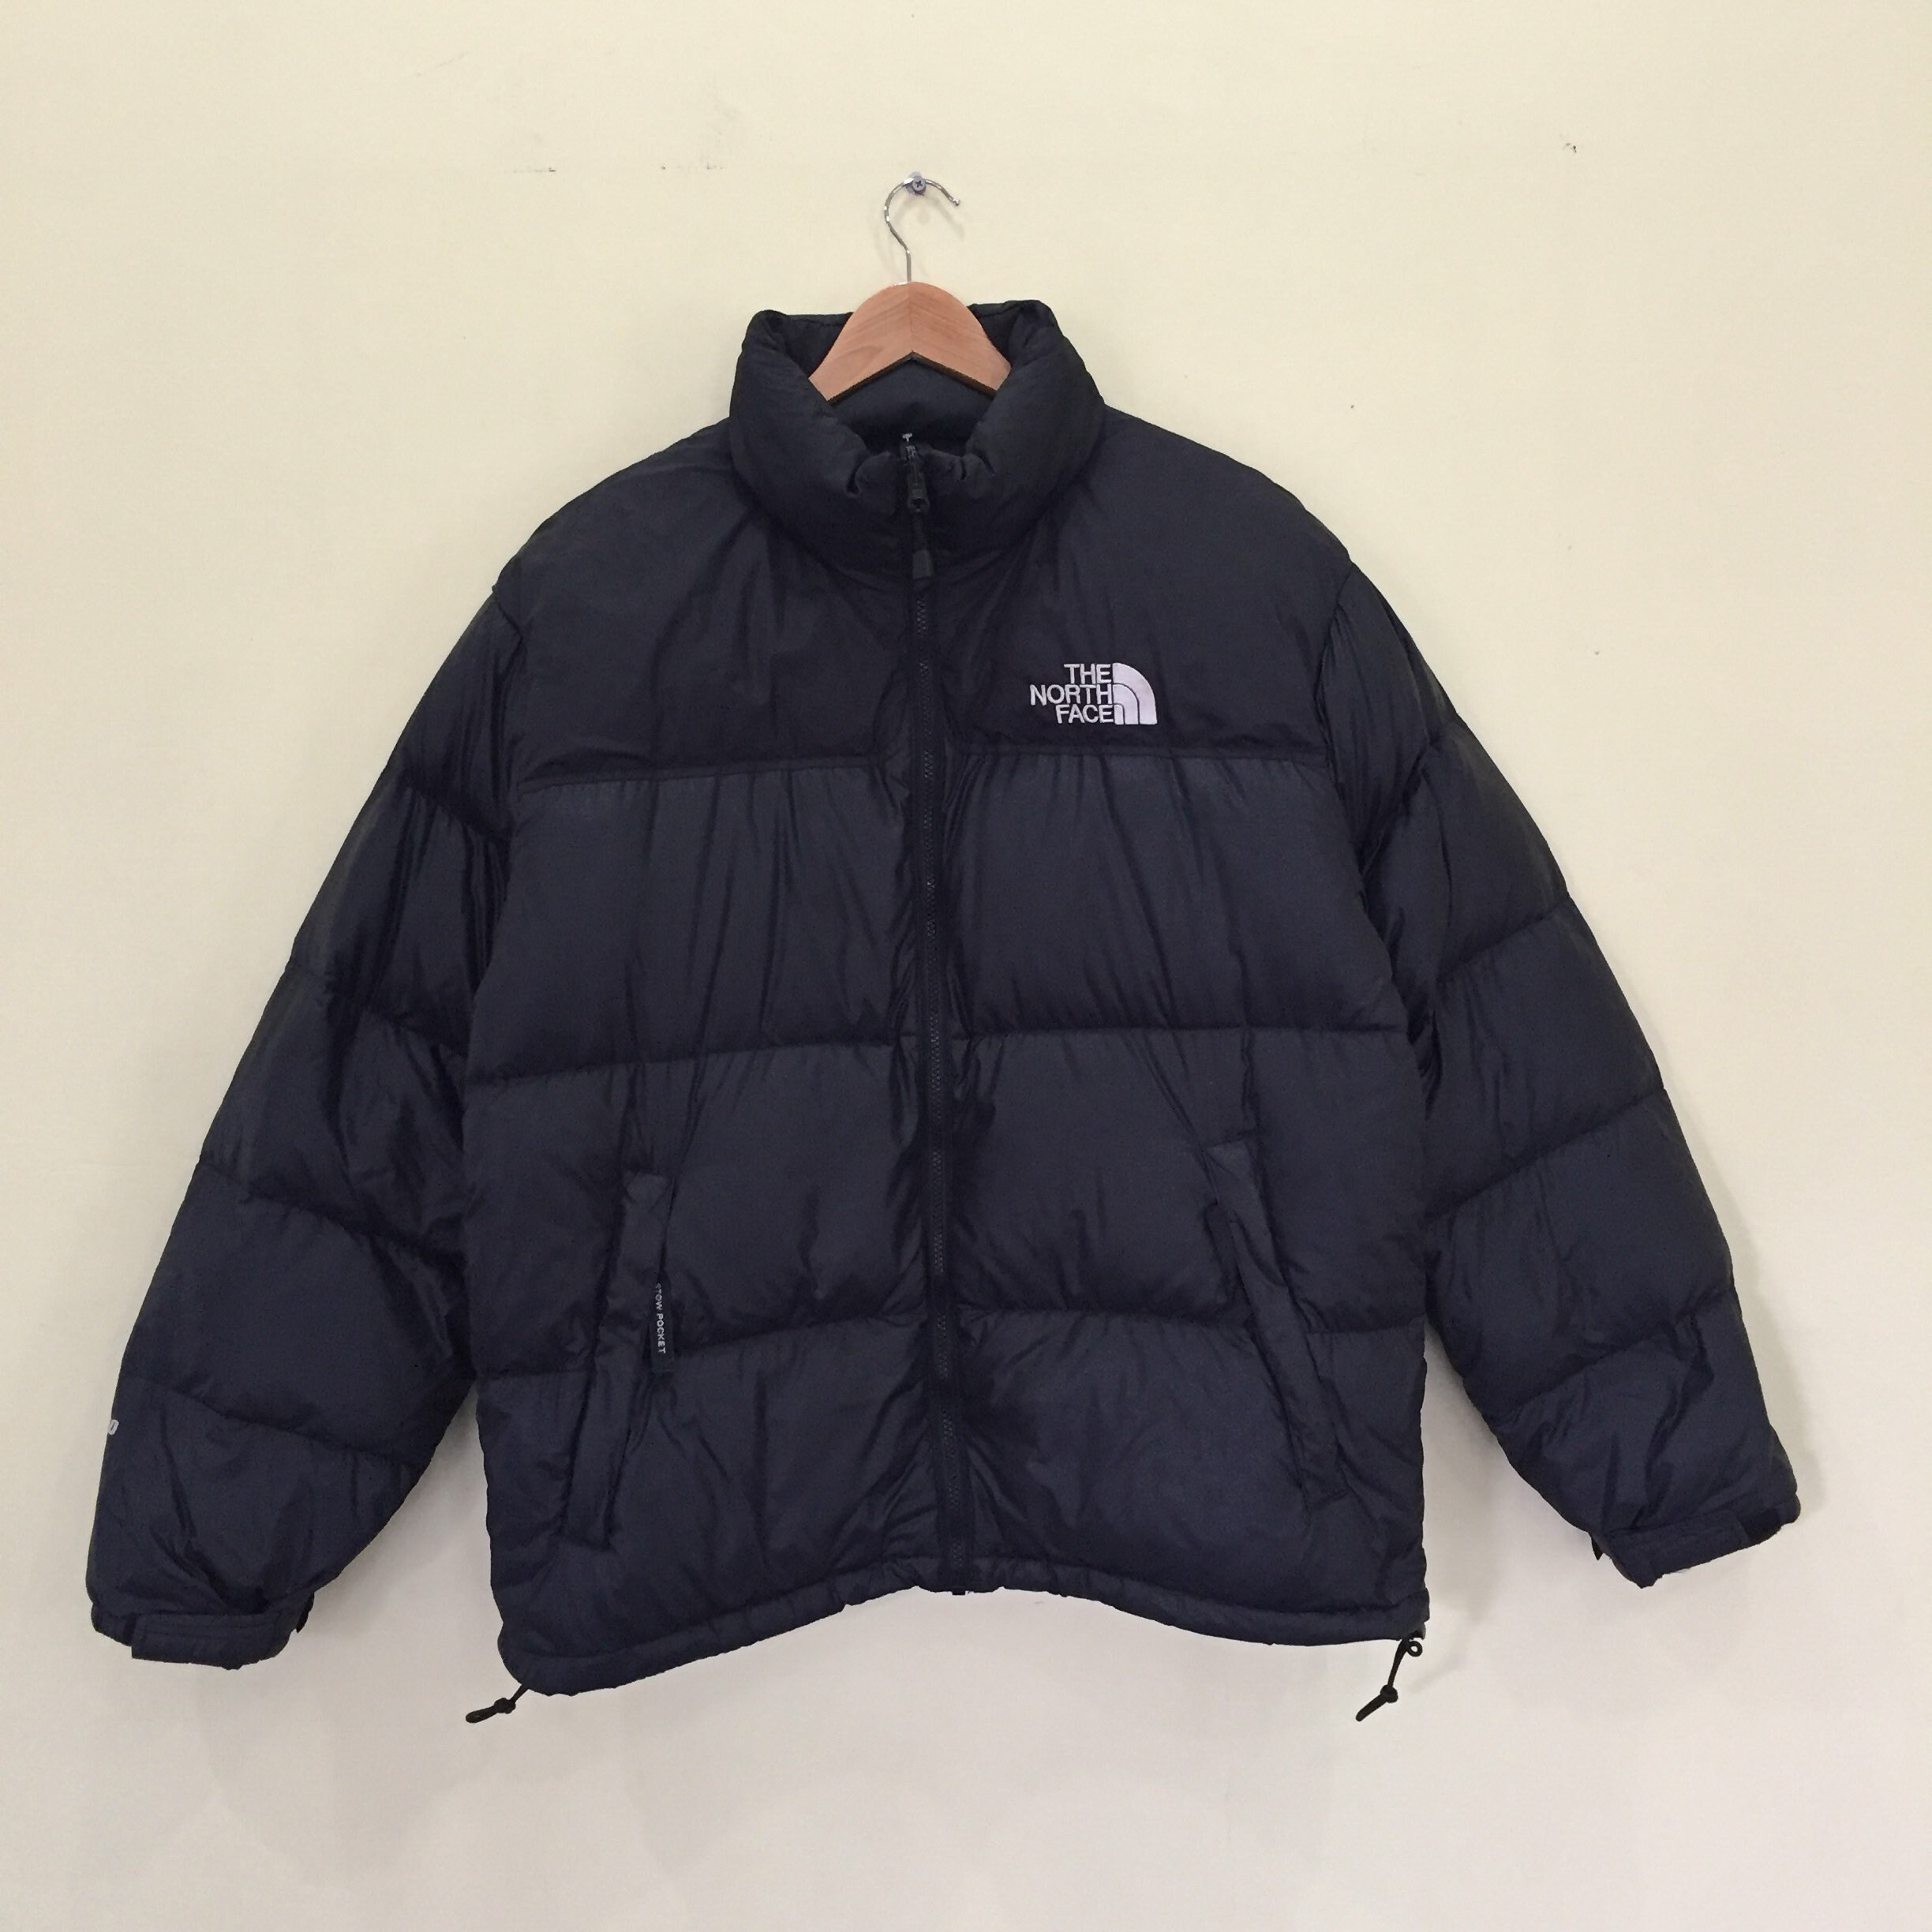 b59c0e175 Vintage!! THE NORTH FACE Fill 700 Nuptse Goose Down Jacket With Stow Pocket  //Packable Jacket//Winter Jacket//Puffer Jacket// Tnf Jacket